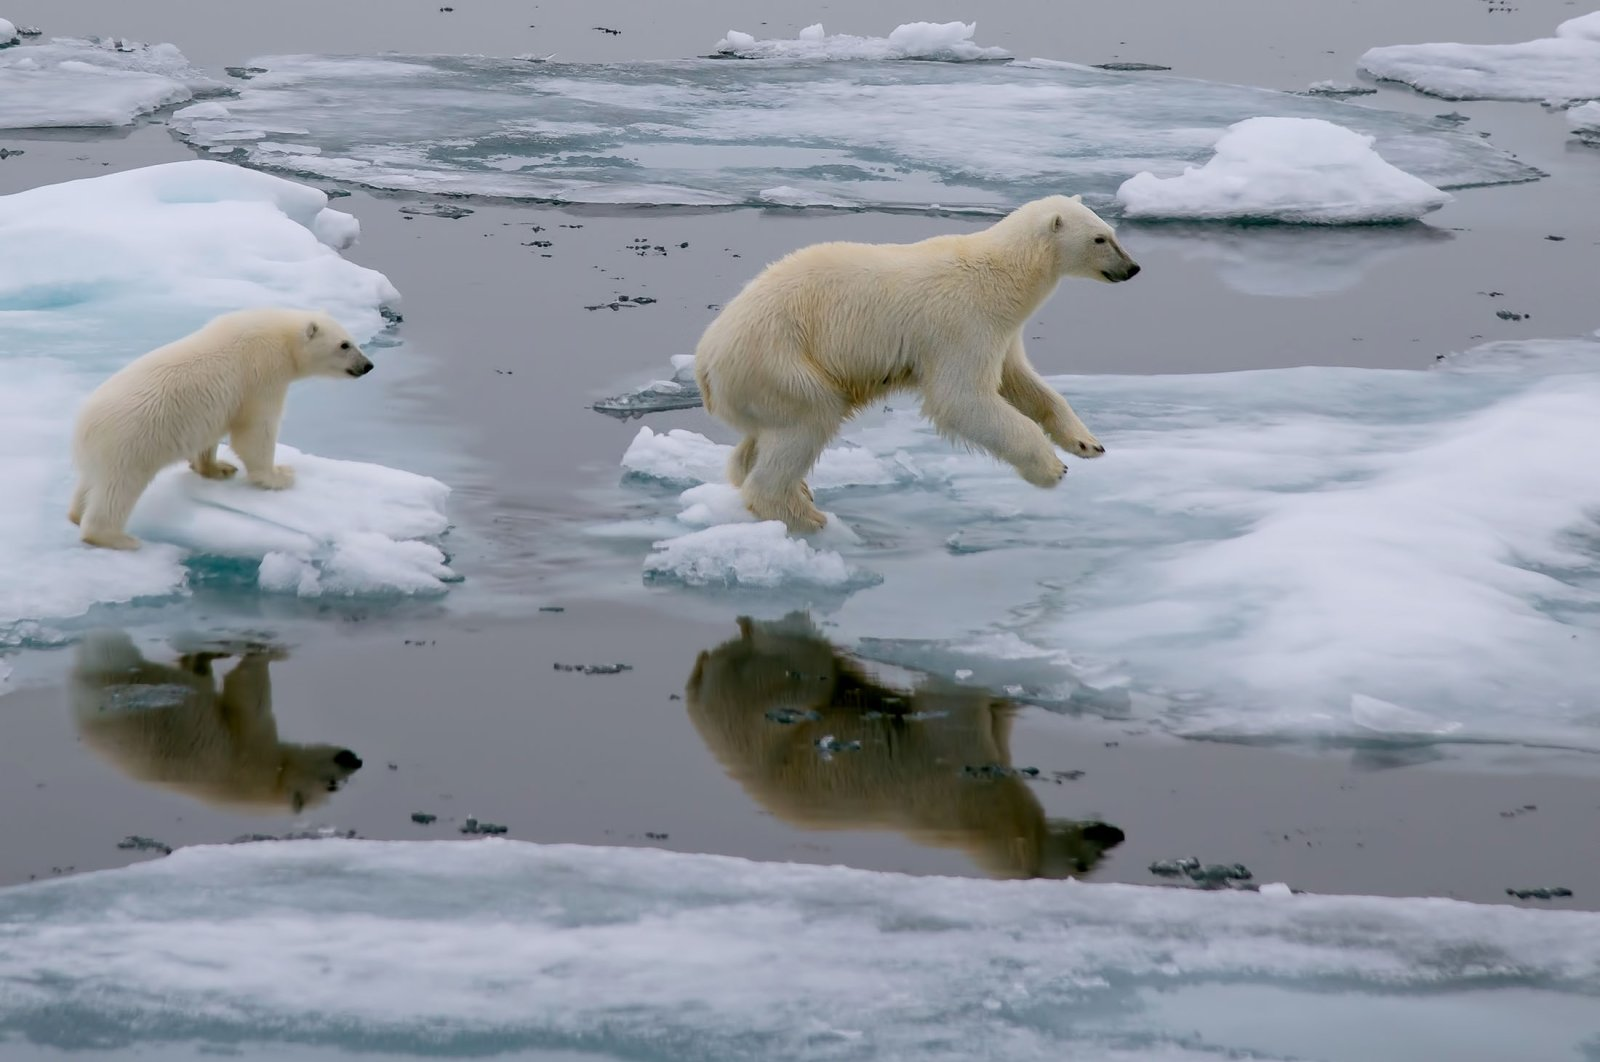 A mother polar bear leads her cub through an ice floe in the Arctic Ocean, north of Svalbard, Norway. (Shutterstock Photo)